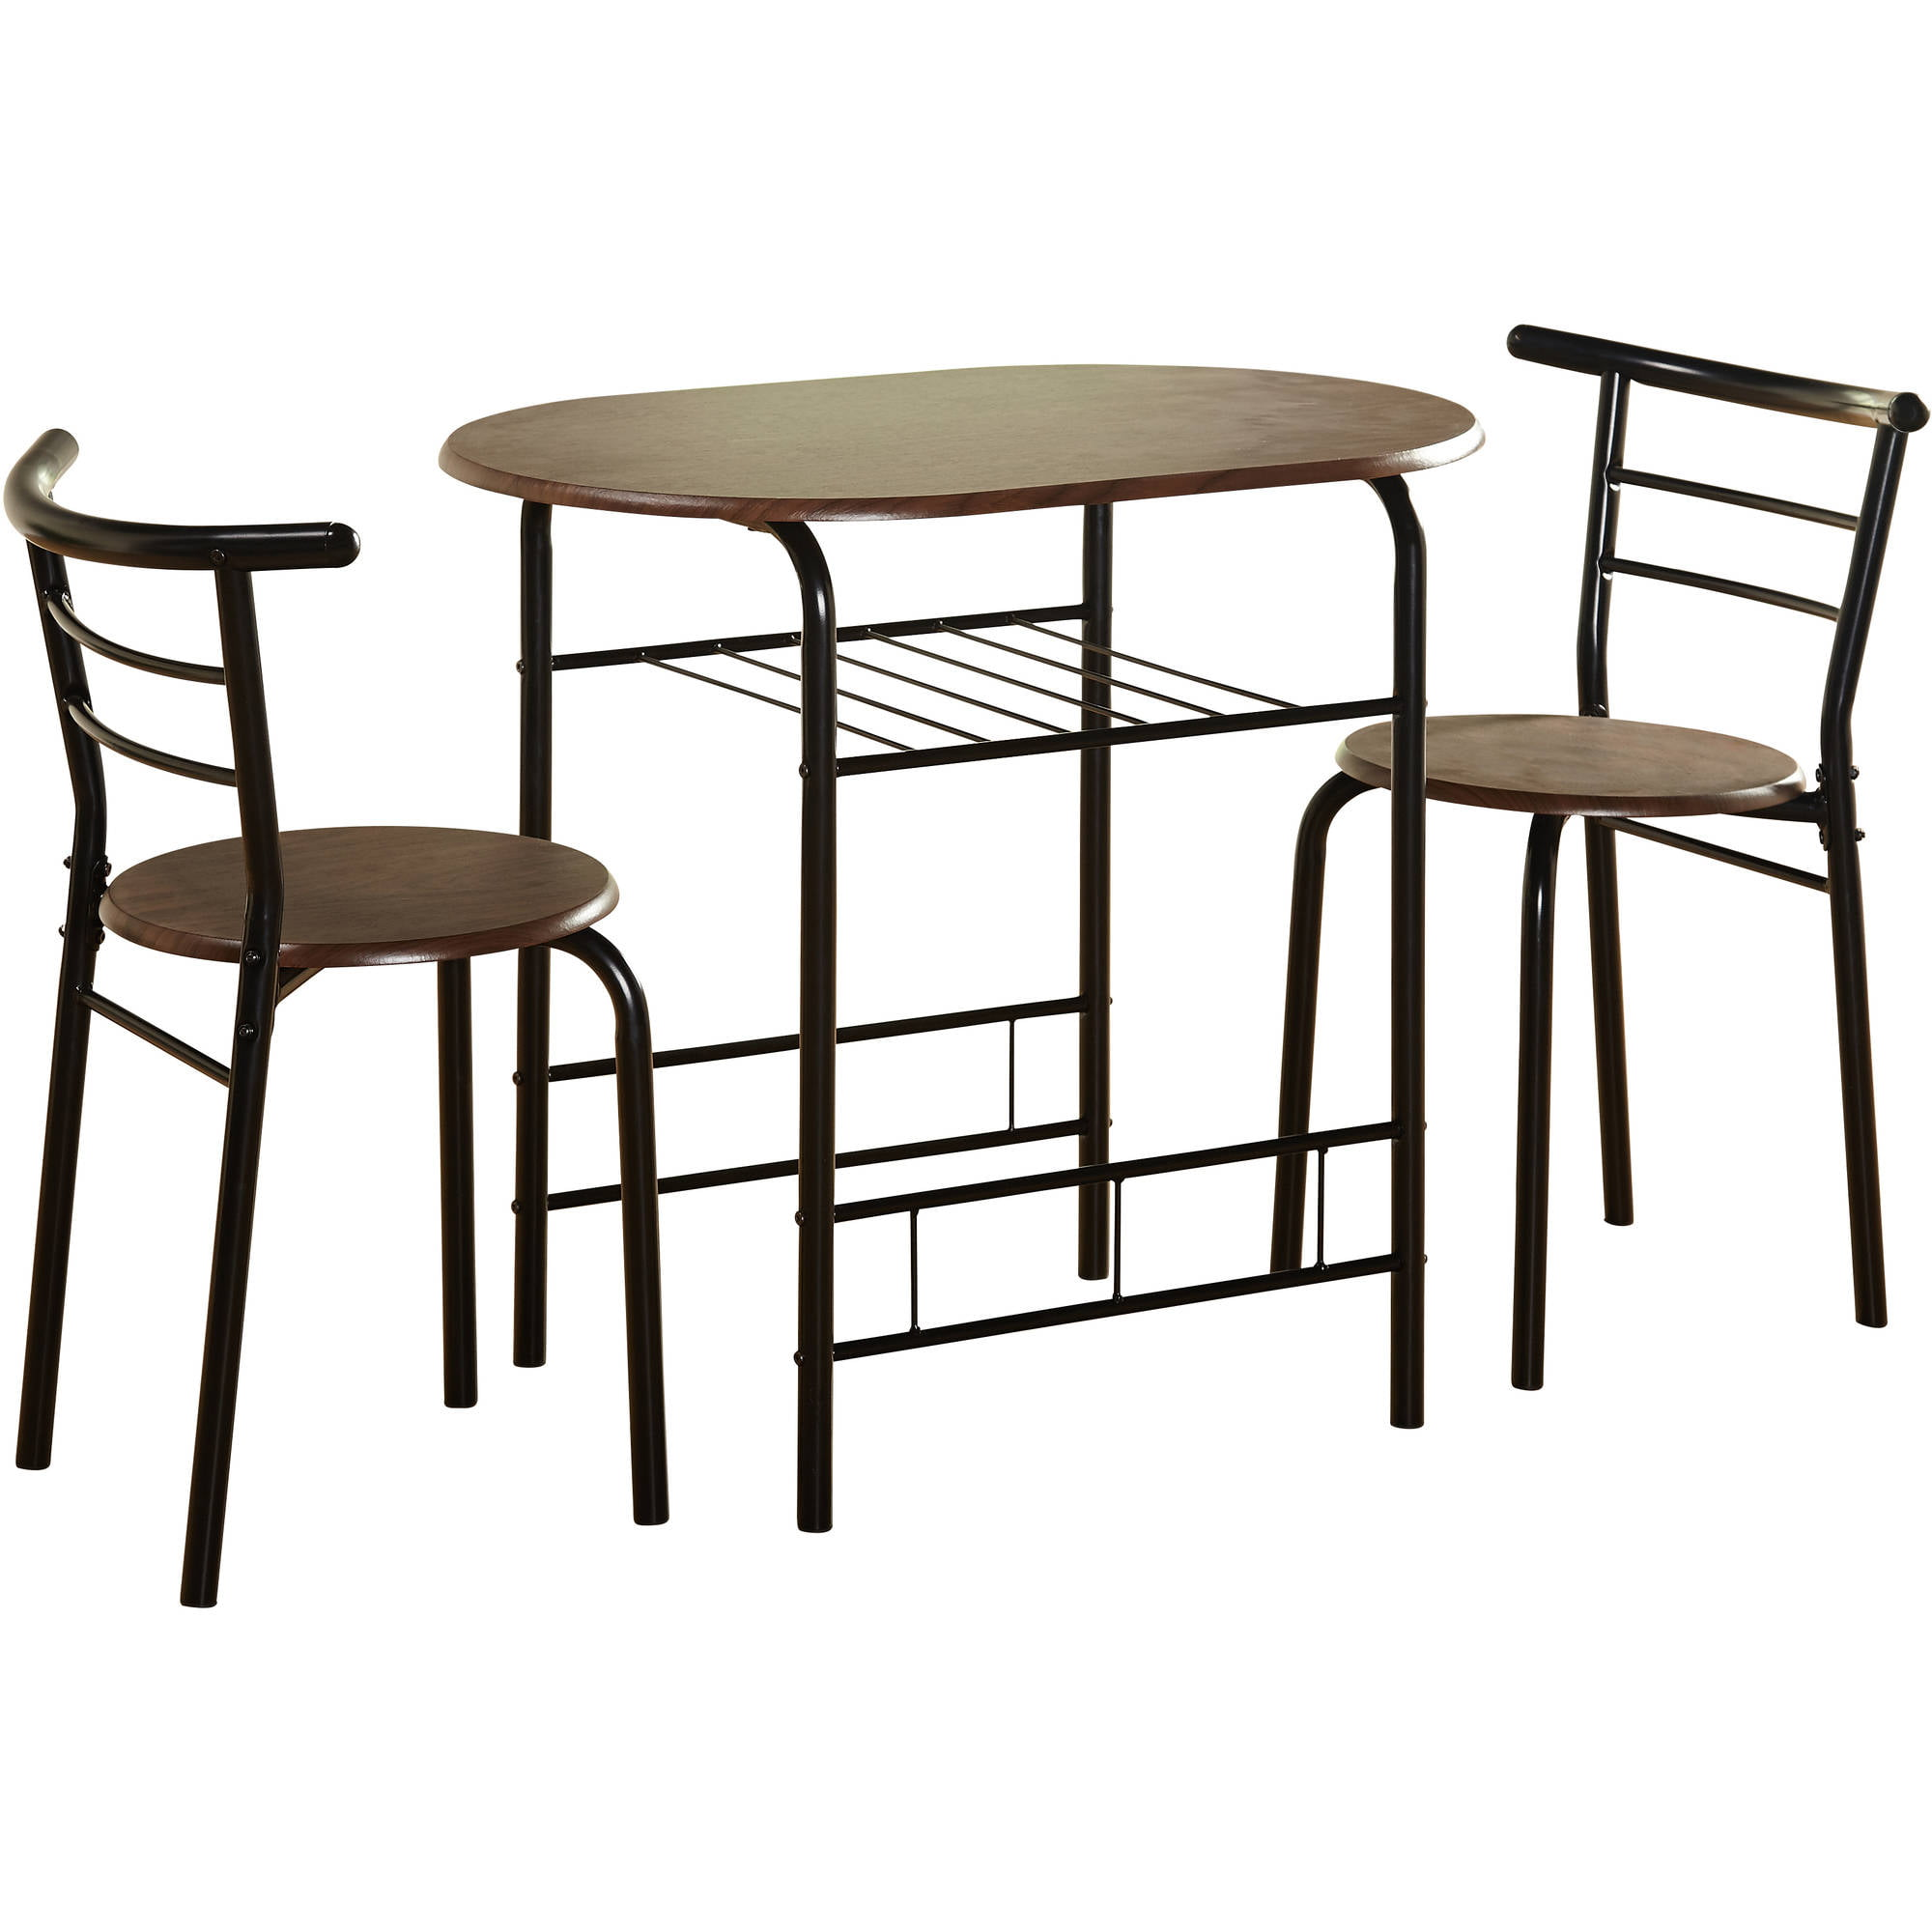 Furniture Images 3-piece bistro set, multiple colors - walmart